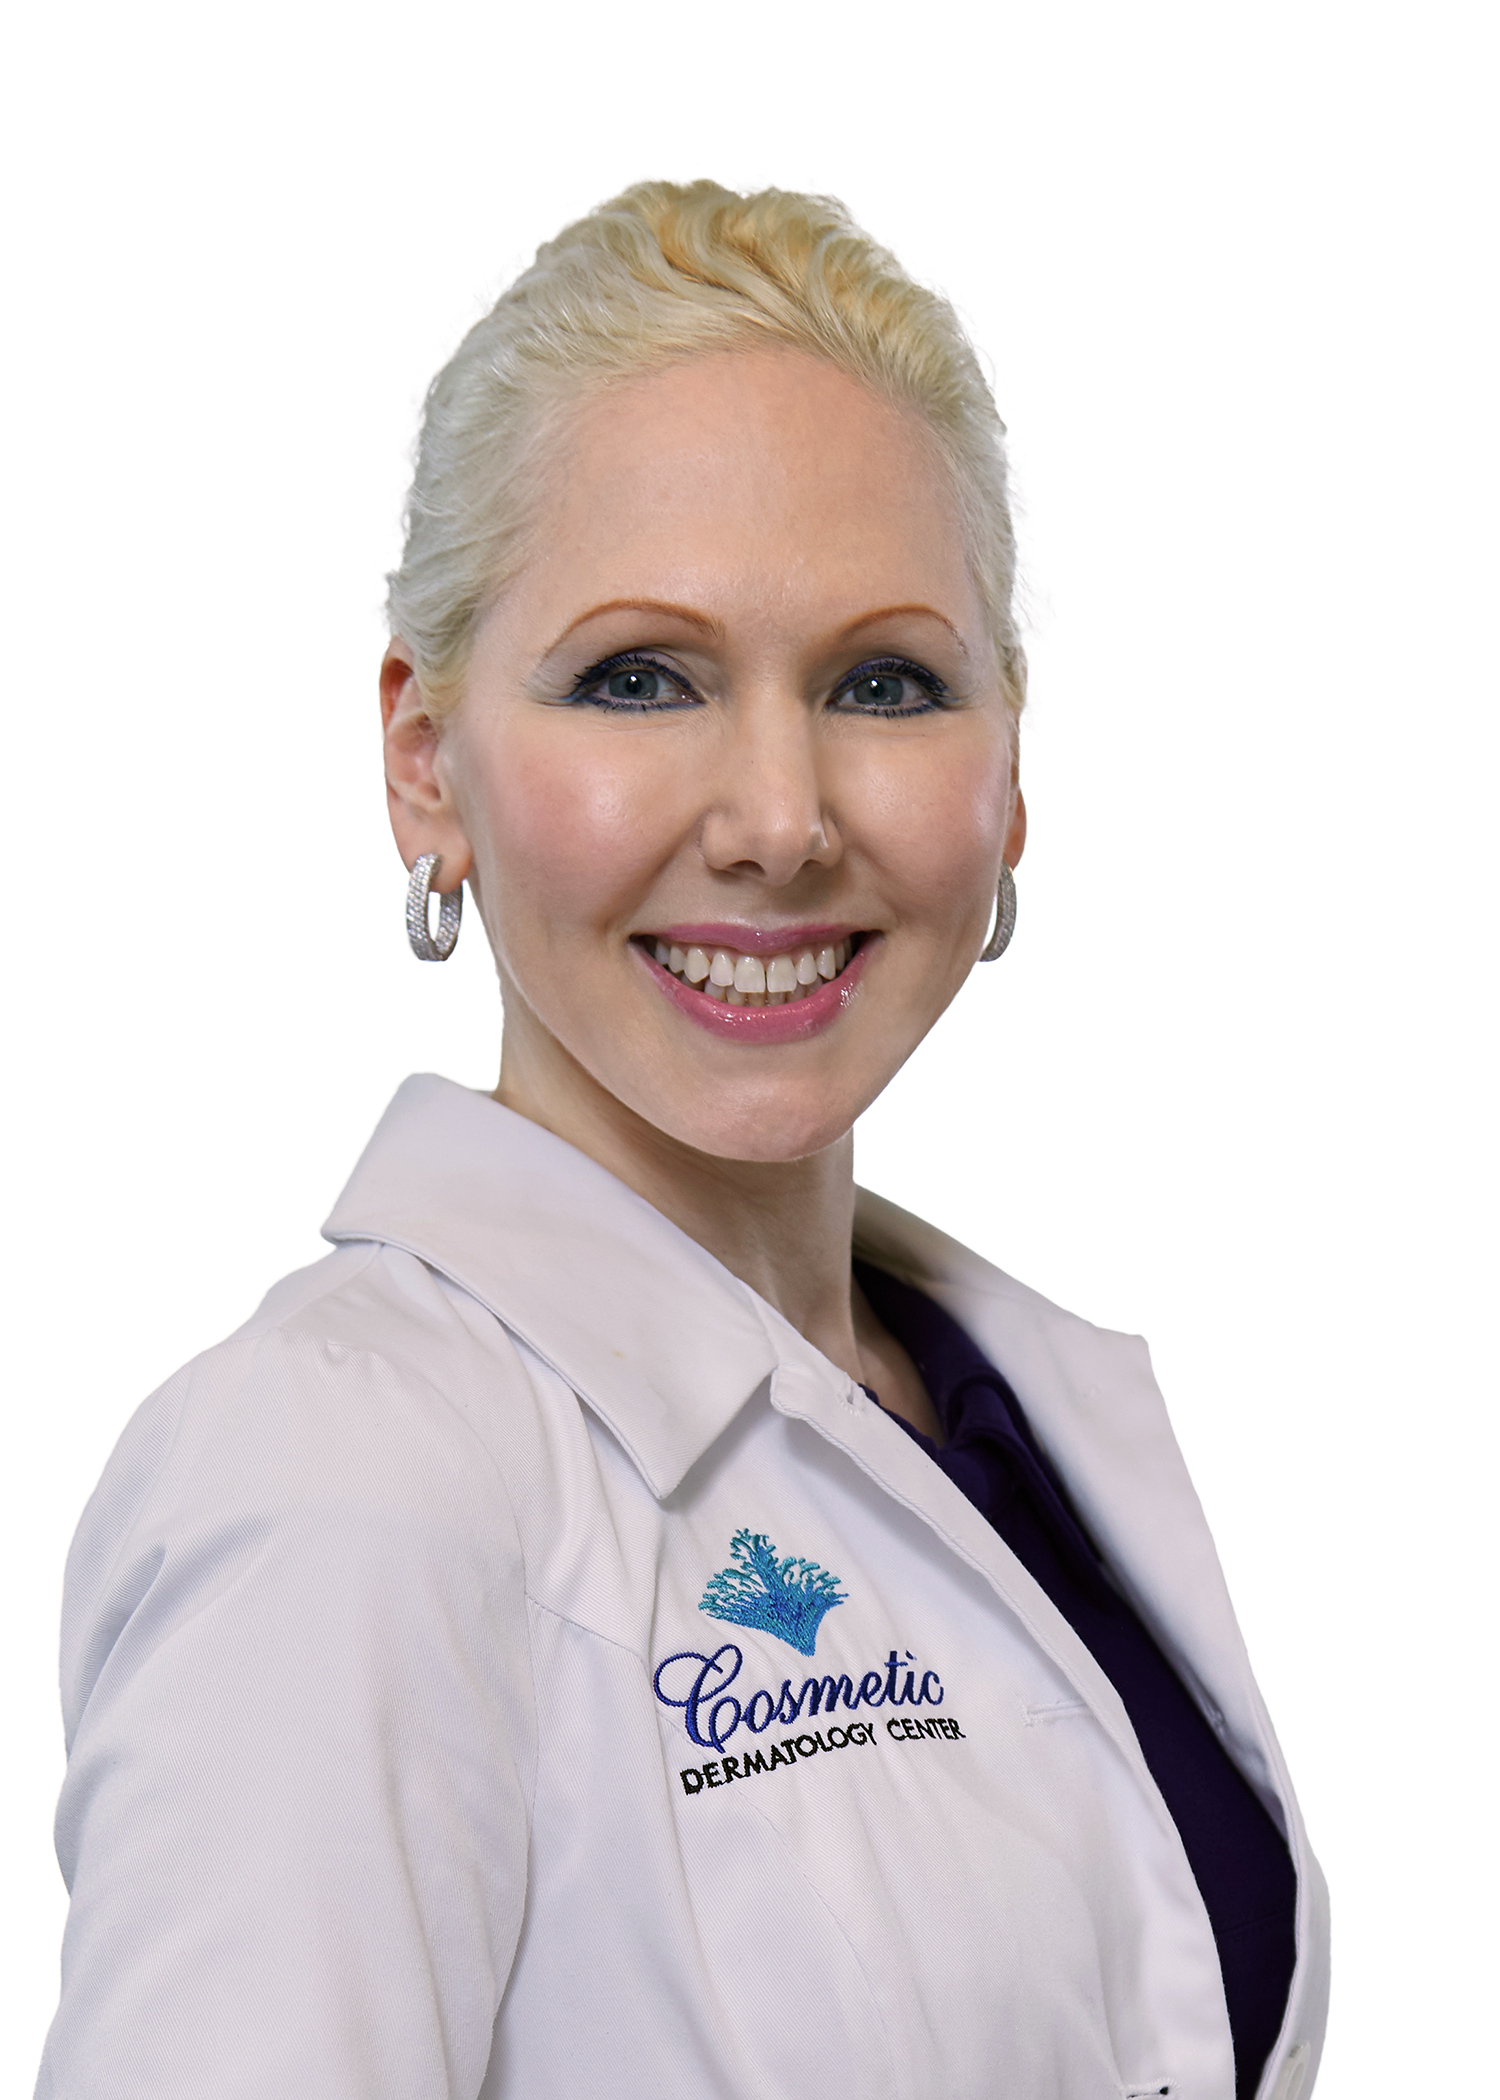 Cosmetic Dermatology CenterHome - Cosmetic Dermatology Center